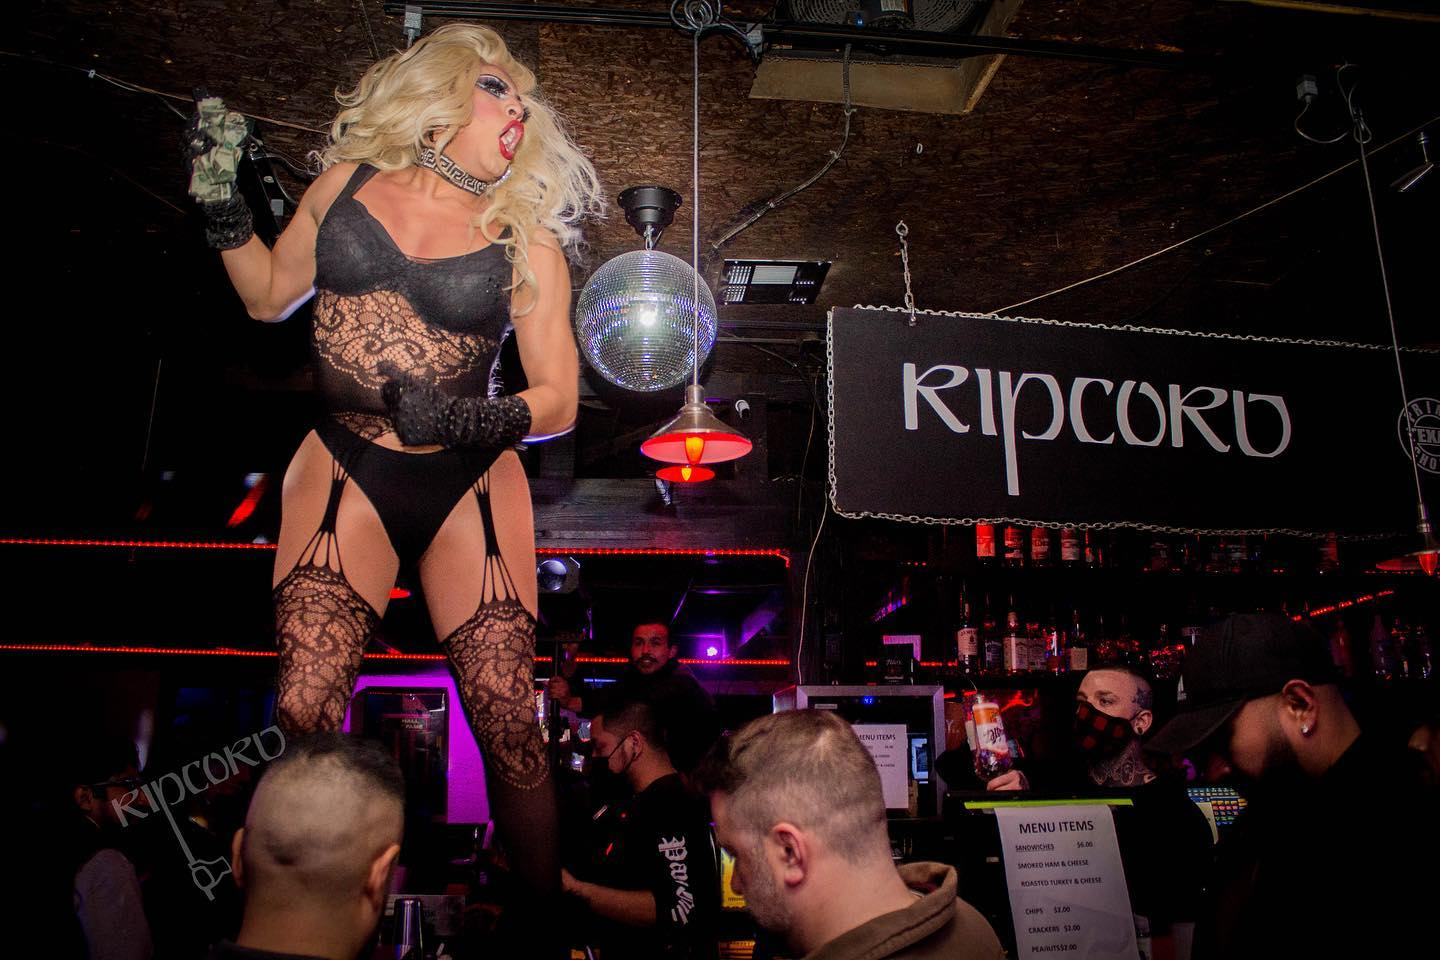 A drag queen performs at Houston bar Ripcord